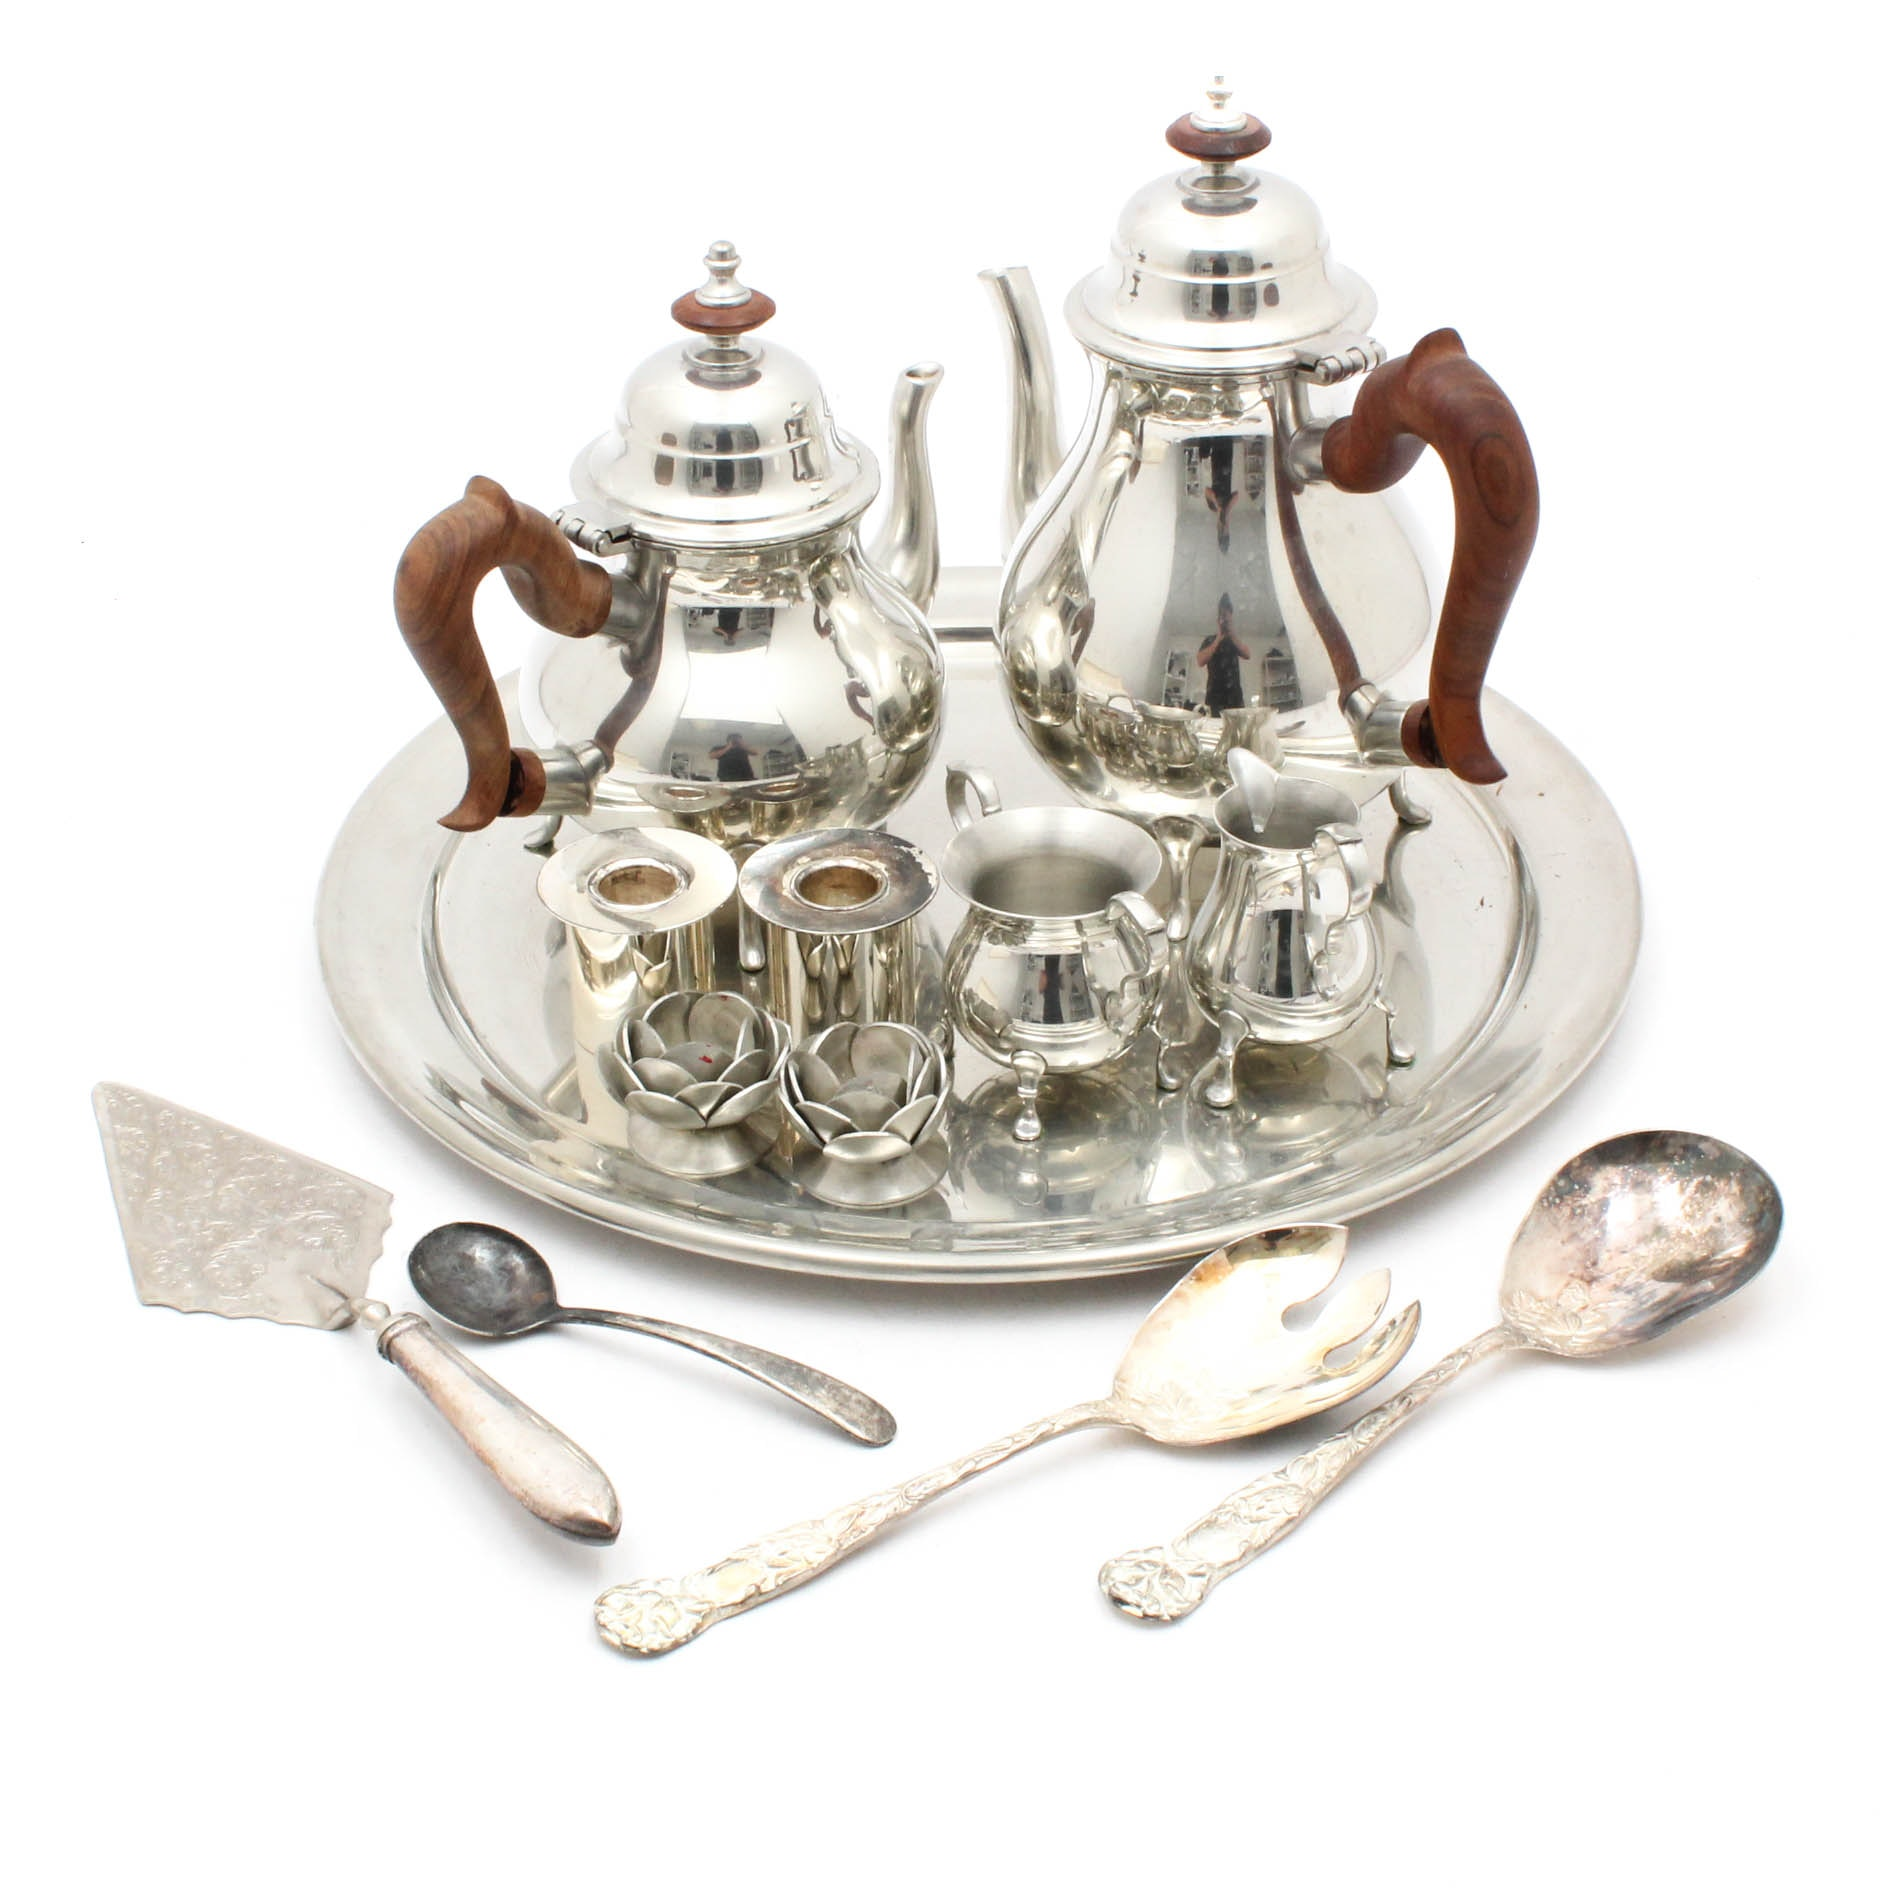 Pewter Coffee and Tea Service with Silver Plate Tableware